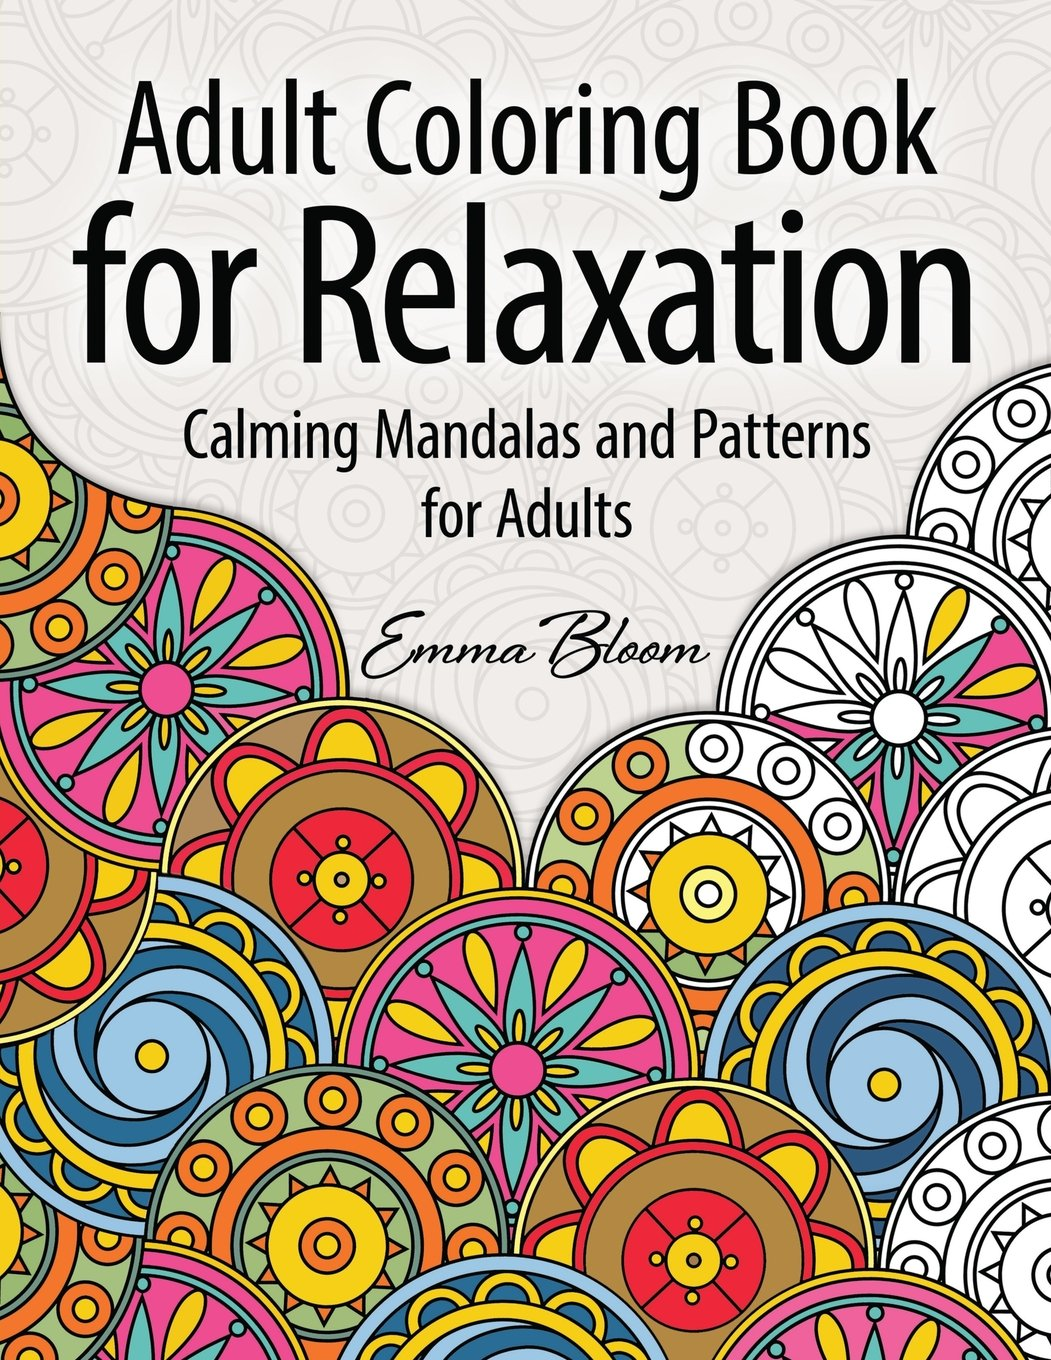 adult coloring book for relaxation calming mandalas and patterns for adults adult coloring books adult coloring books emma bloom 9781514186374 - Color Books For Adults